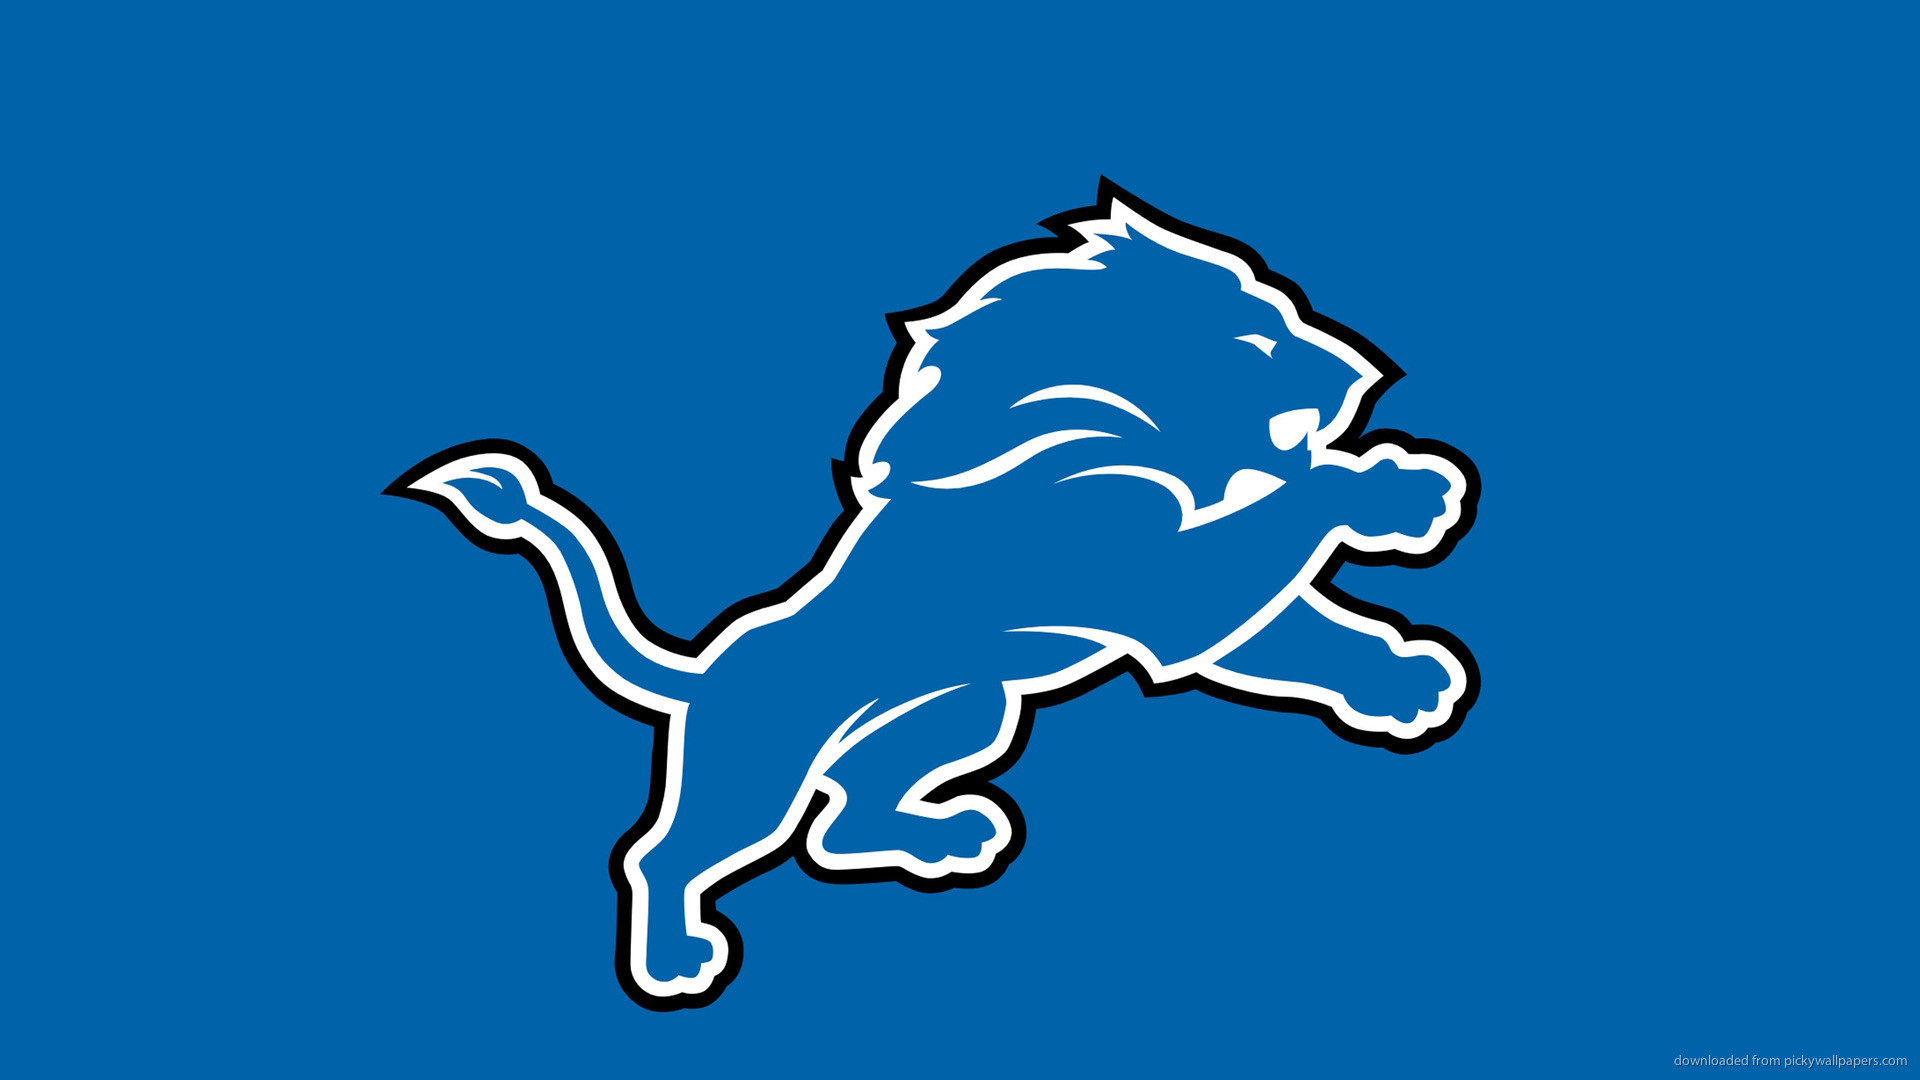 Detroit Lions Logo On A Blue Background Picture For iPhone .